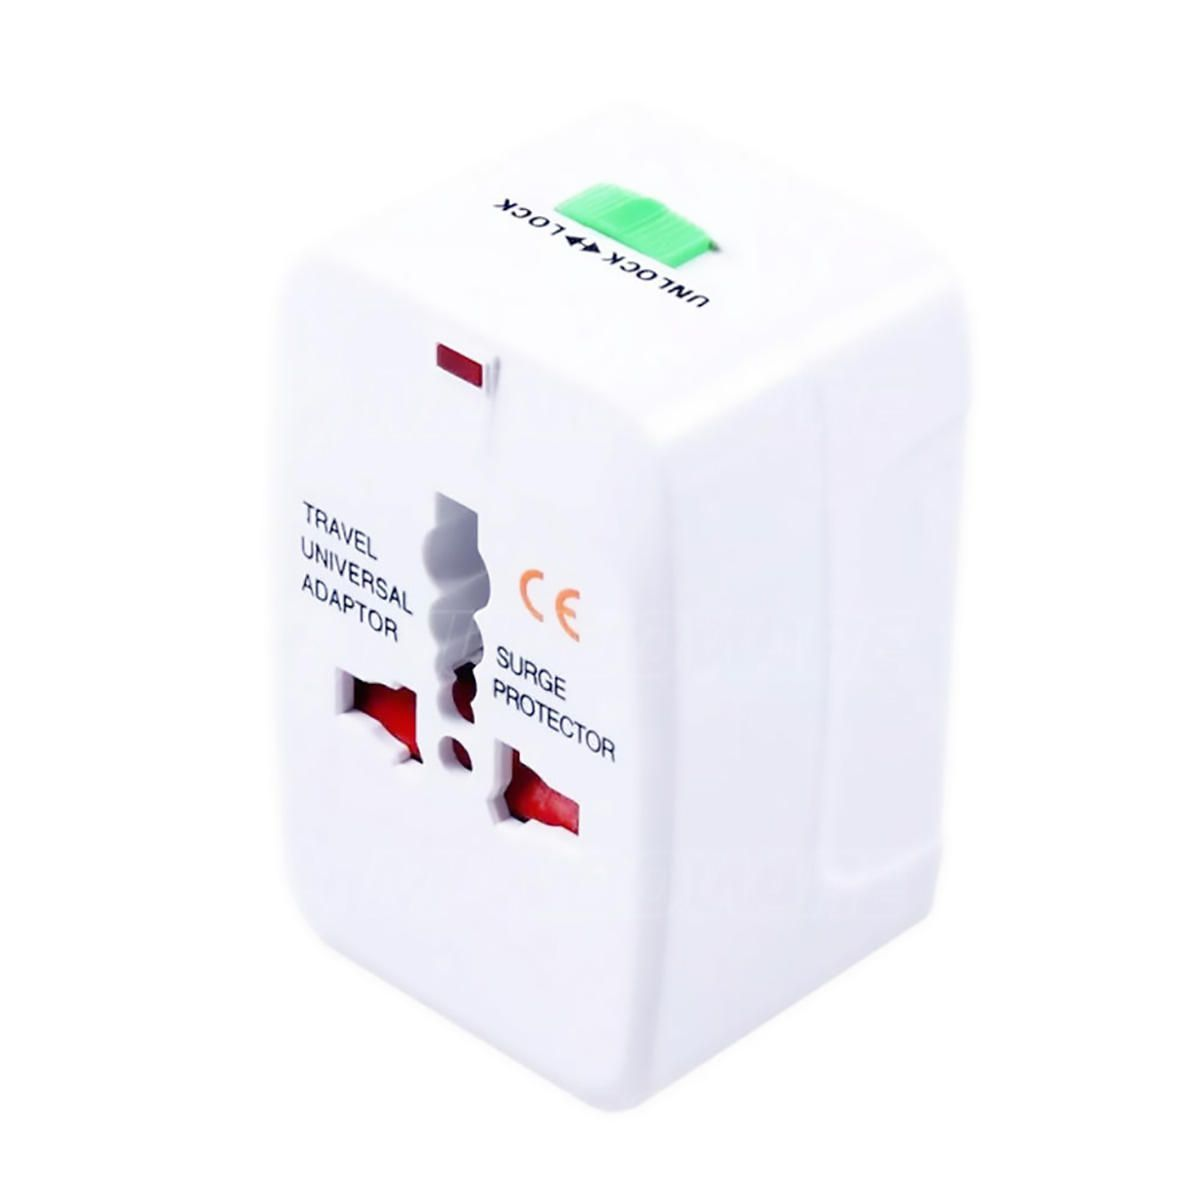 Adaptador de Tomada Universal All in One para EUA Europa Asia UK China AU-100